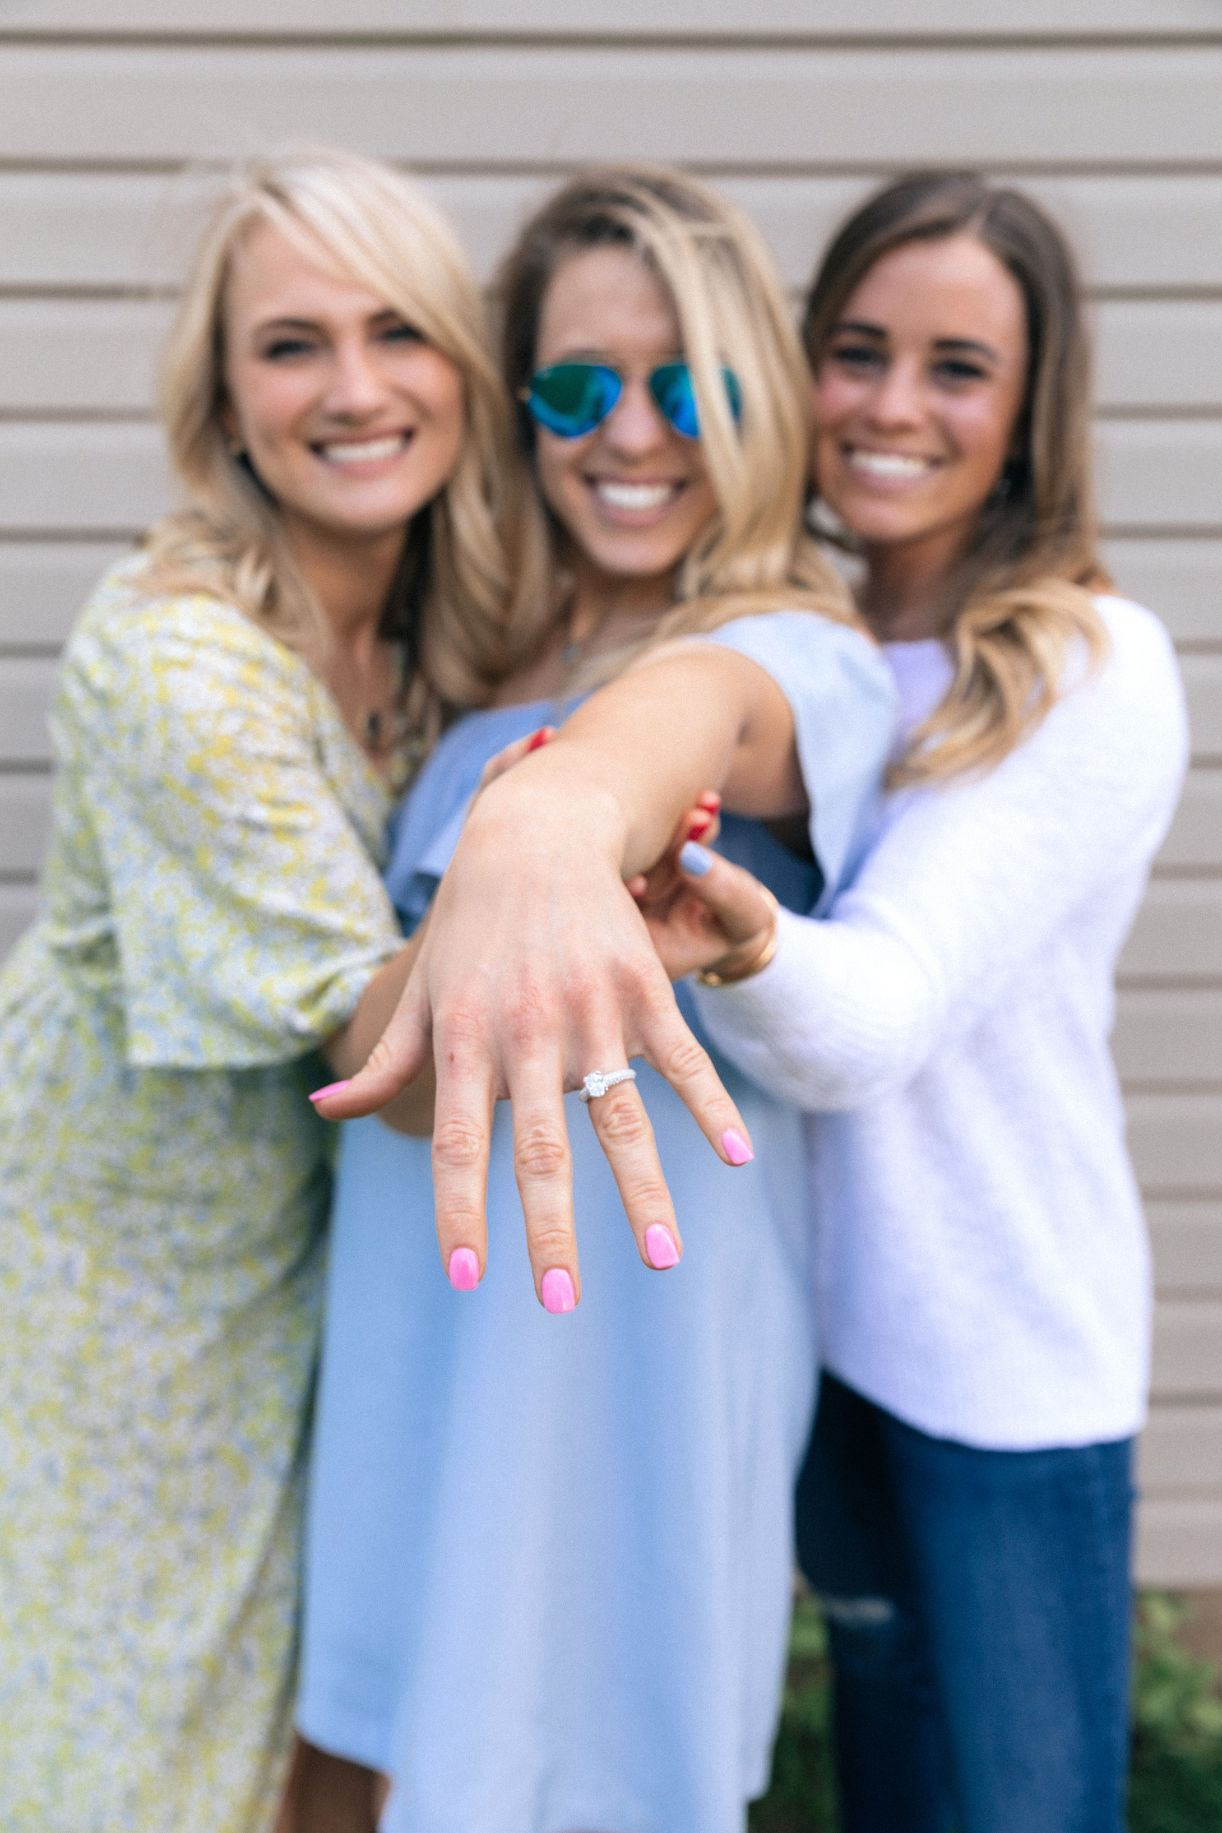 girl showing off her engagement ring with friends